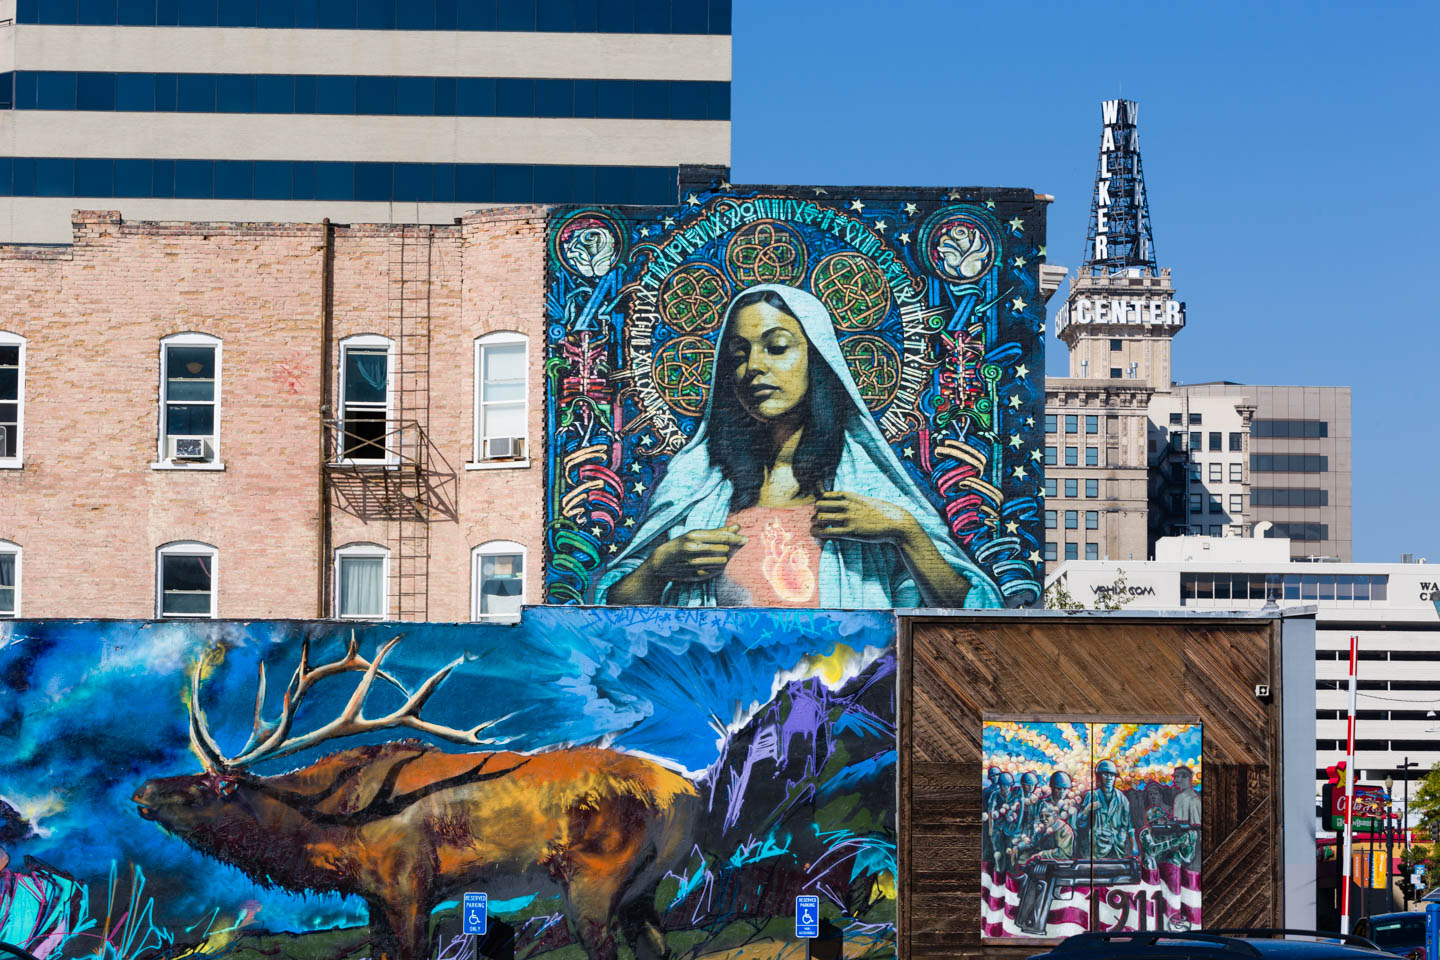 Downtown Salt Lake City decorated with graffiti